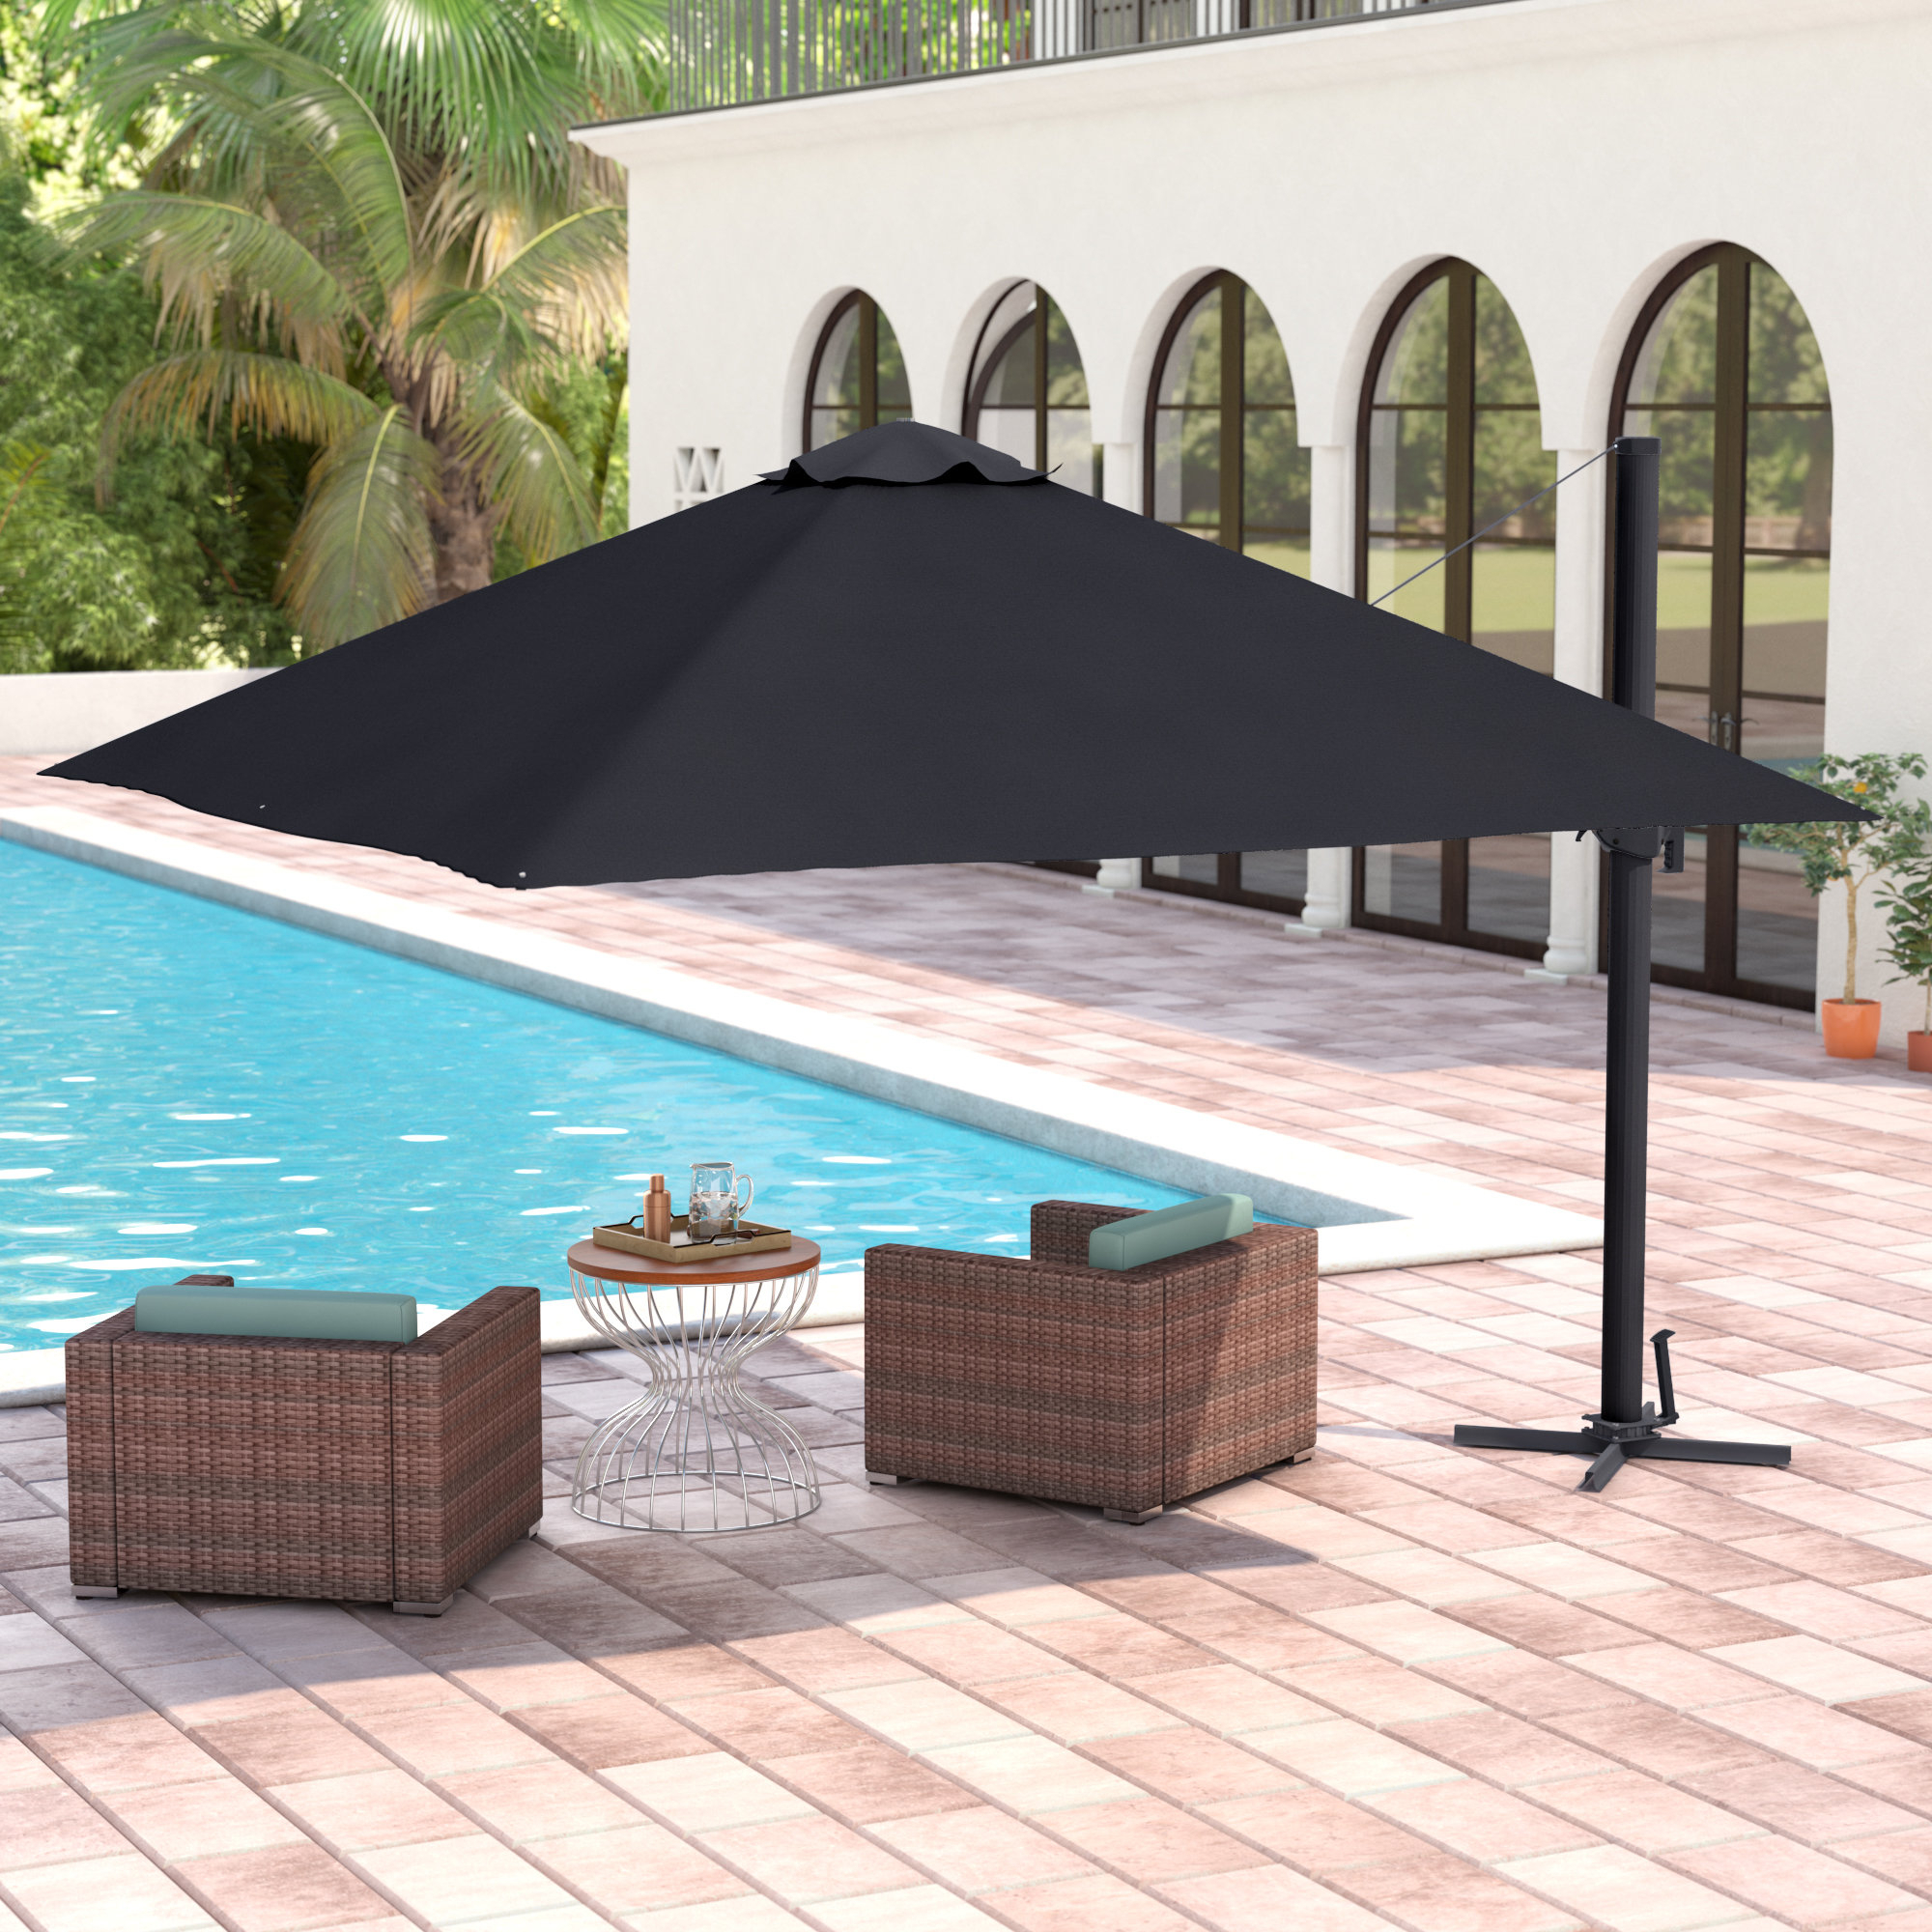 Grote Liberty Aluminum Square Cantilever Umbrella For Widely Used Maidste Square Cantilever Umbrellas (View 16 of 20)